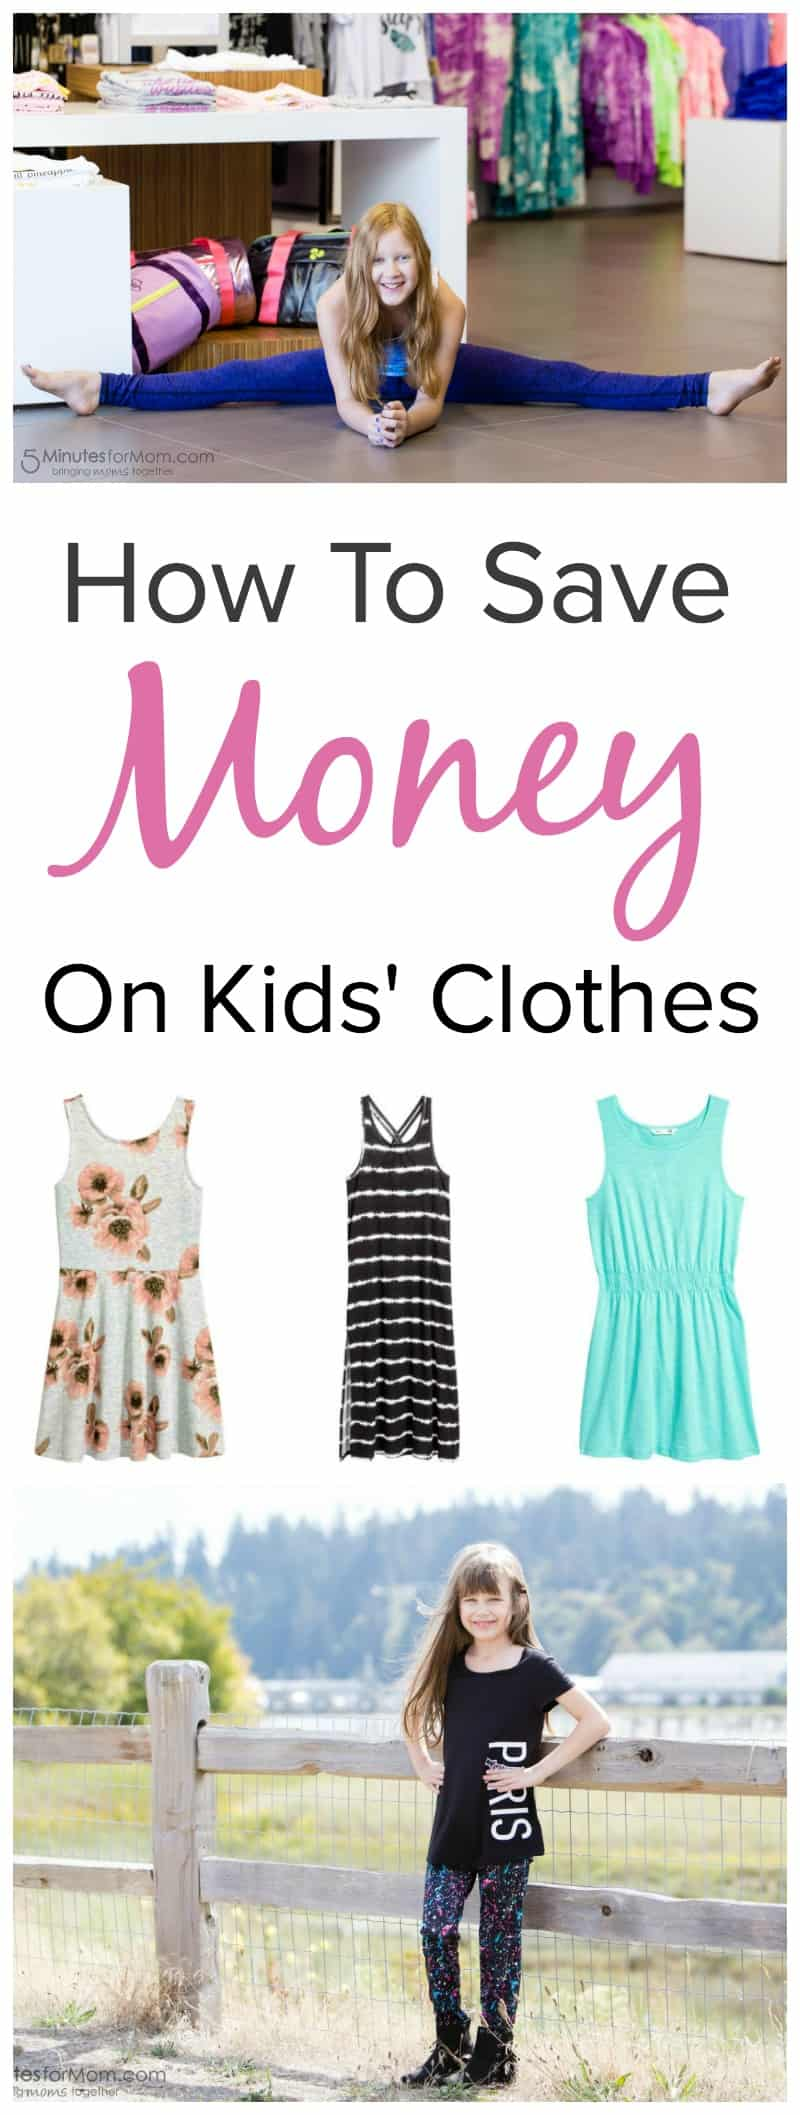 How to Save Money on Kids Clothes